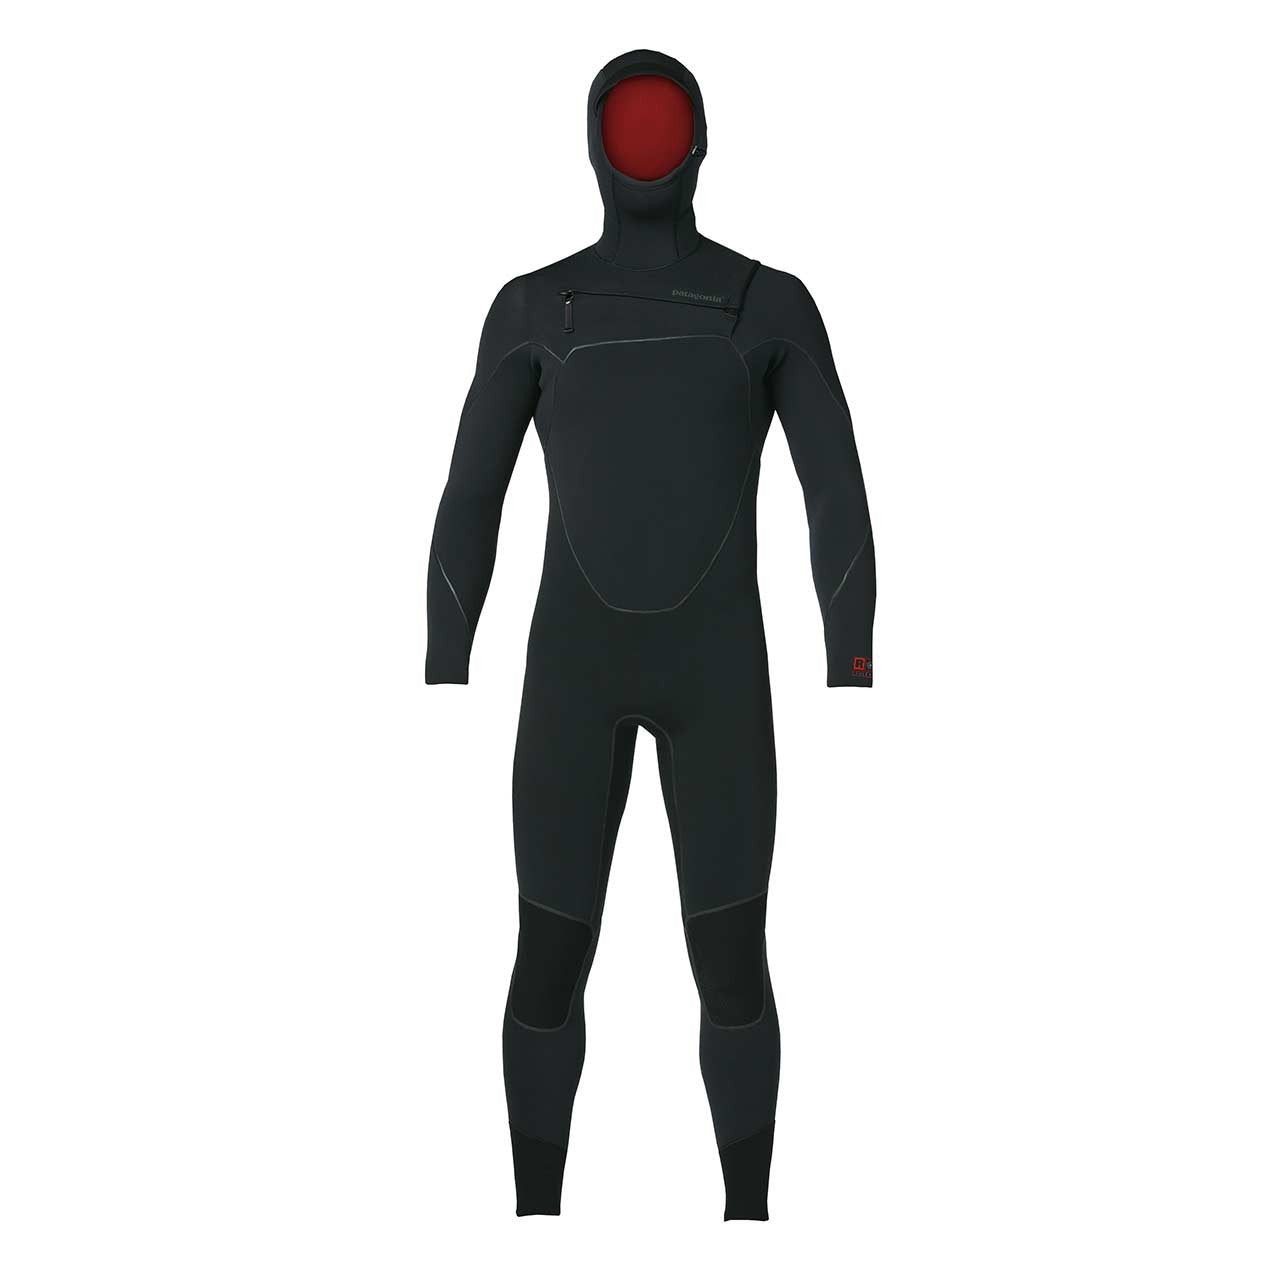 Patagonia_M's R4 Yulex FZ Hooded Full Suit_Black_L